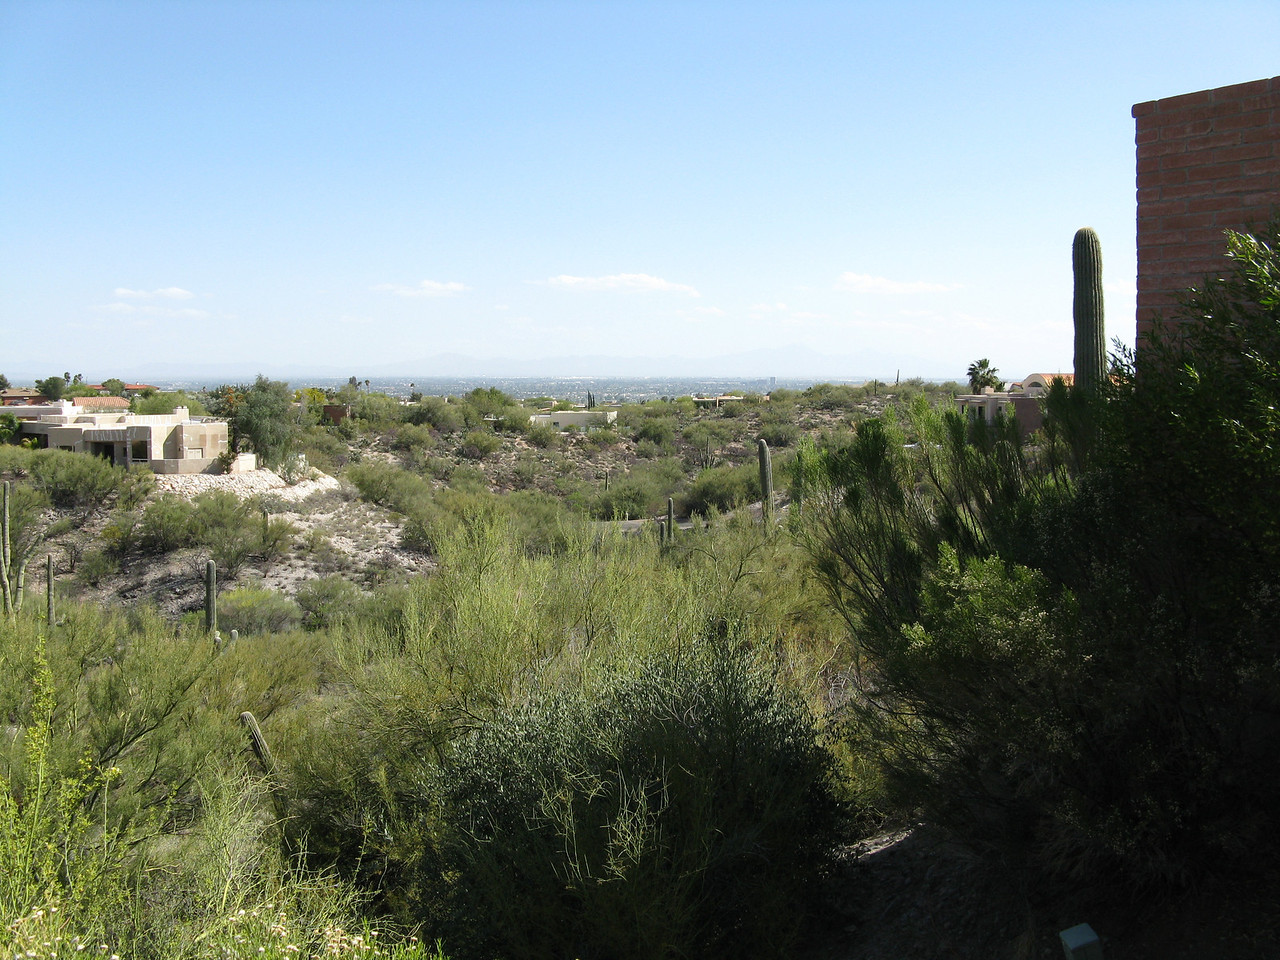 This is the view from the back terrace of Mary's dad's new house in the northern section of Tucson.  This image is looking southeast towards downtown Tucson.